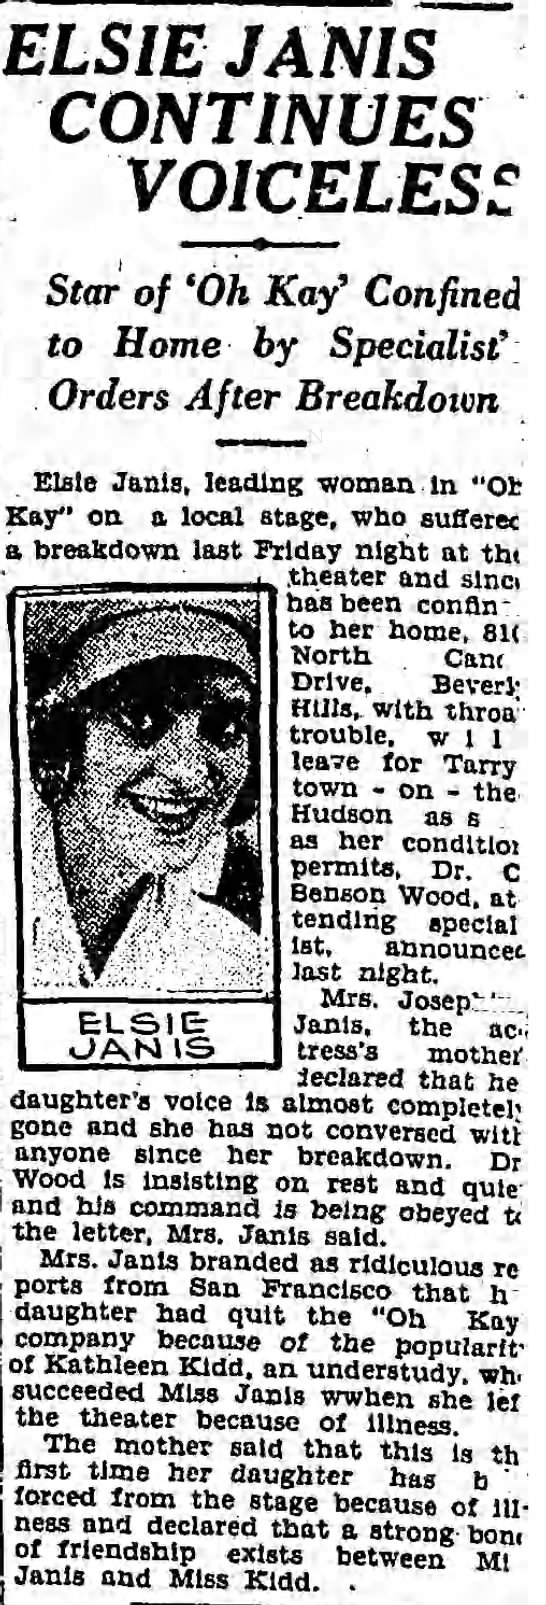 Los Angeles Times, October 11, 1927, p.34 -